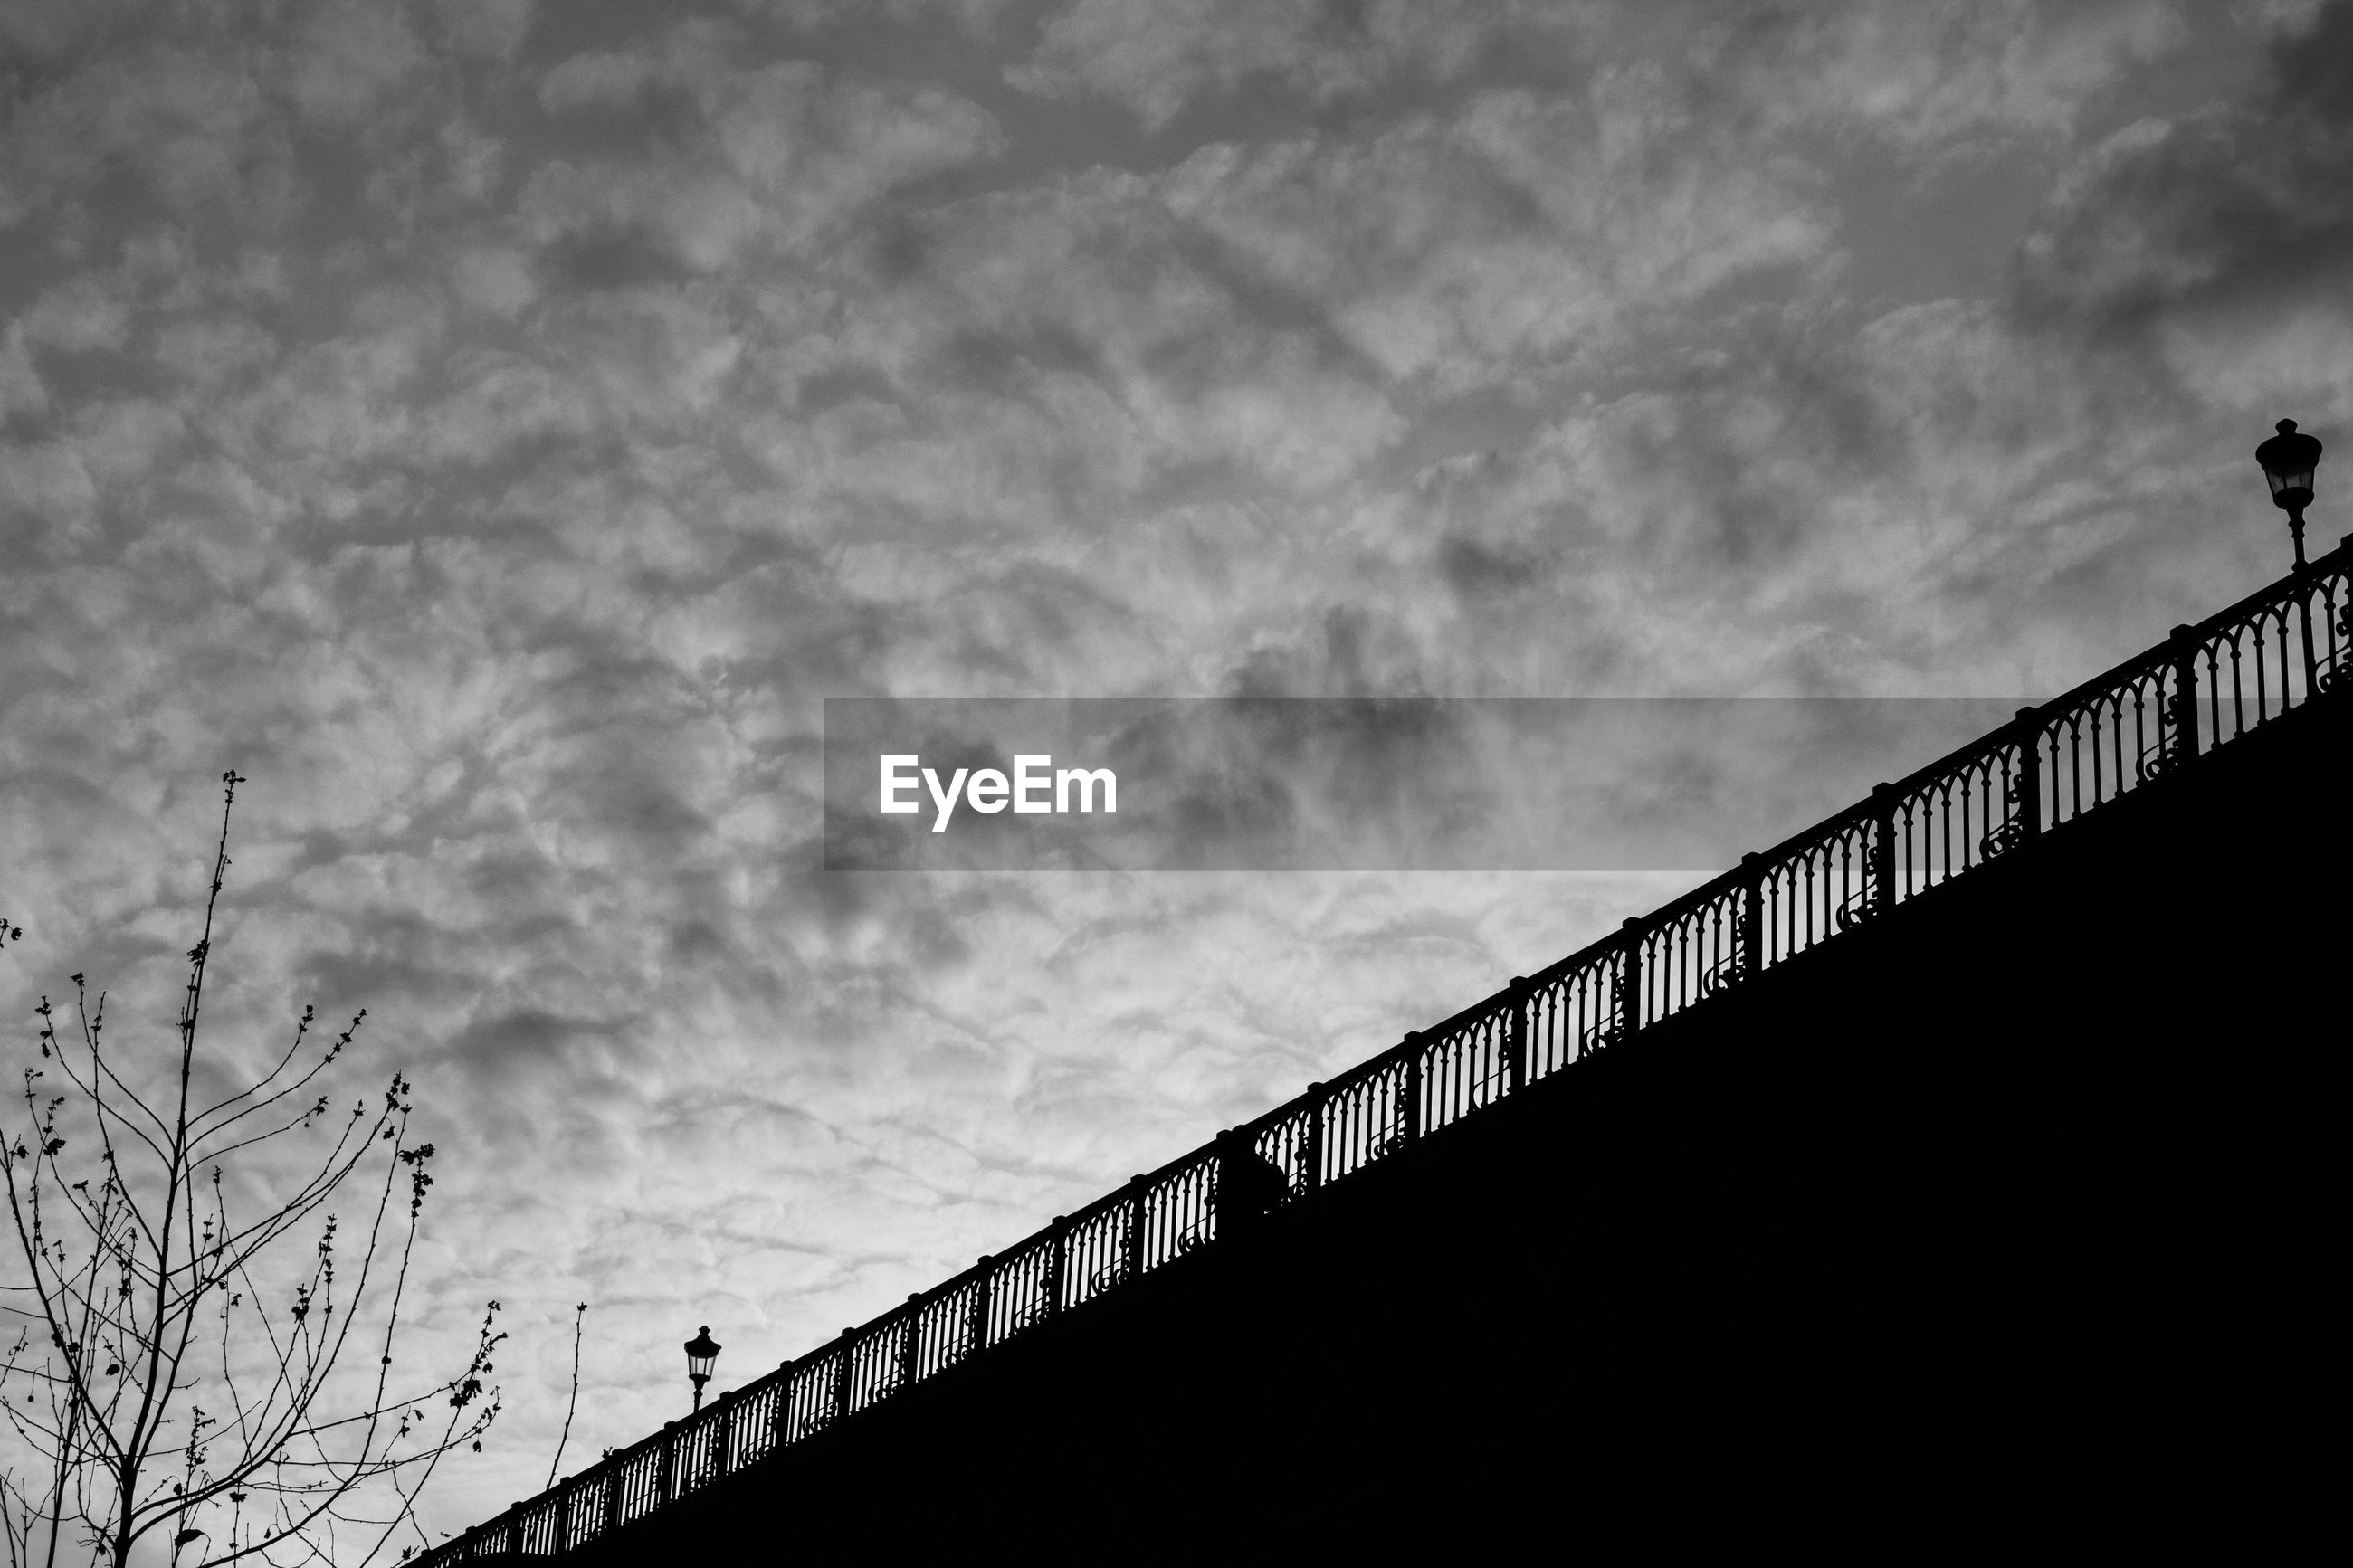 LOW ANGLE VIEW OF BRIDGE AGAINST SKY AT DUSK